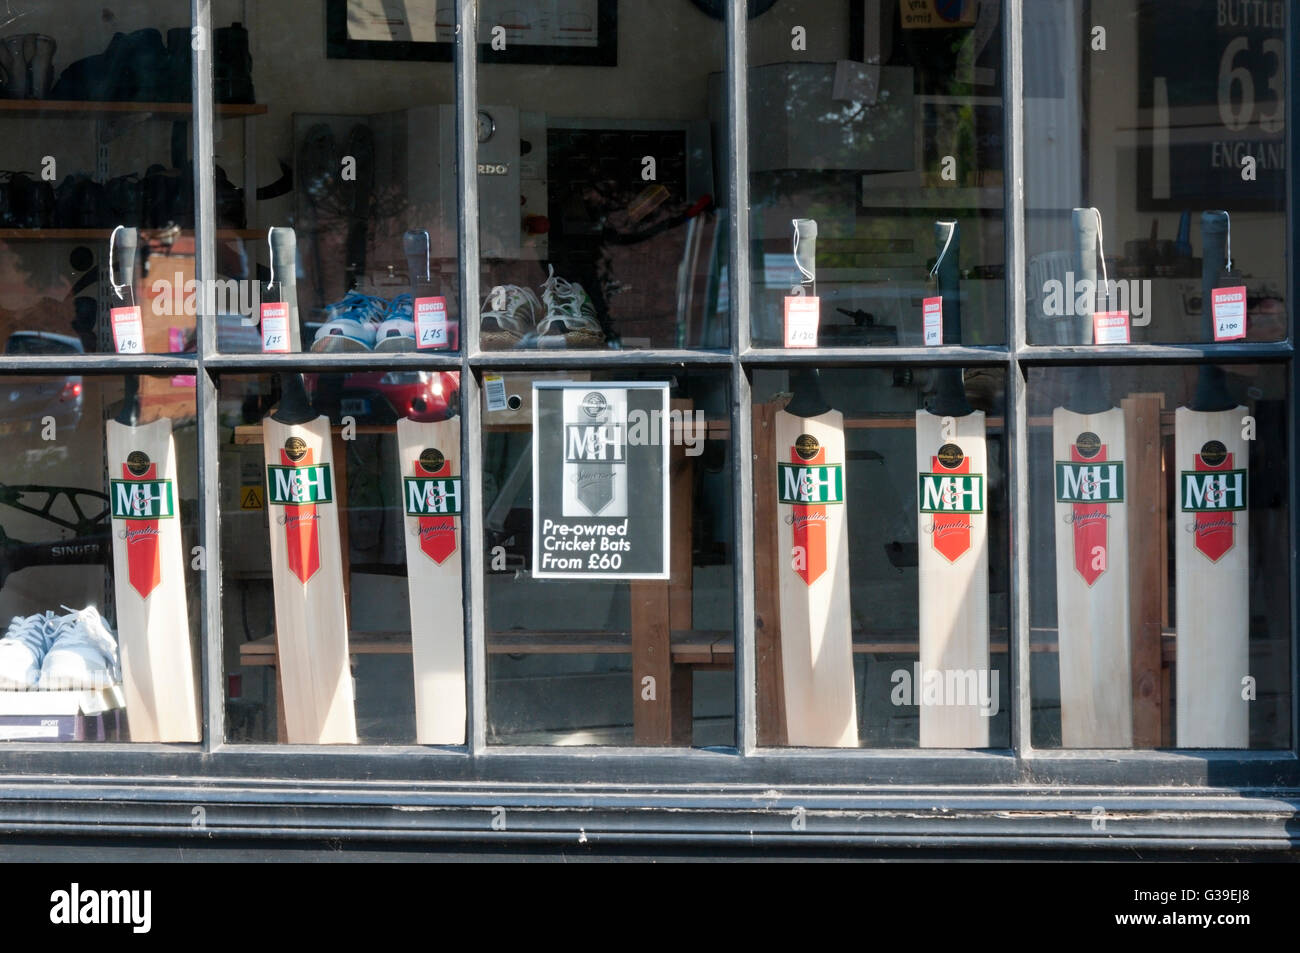 Secondhand cricket bats for sale in a Taunton shop window. - Stock Image